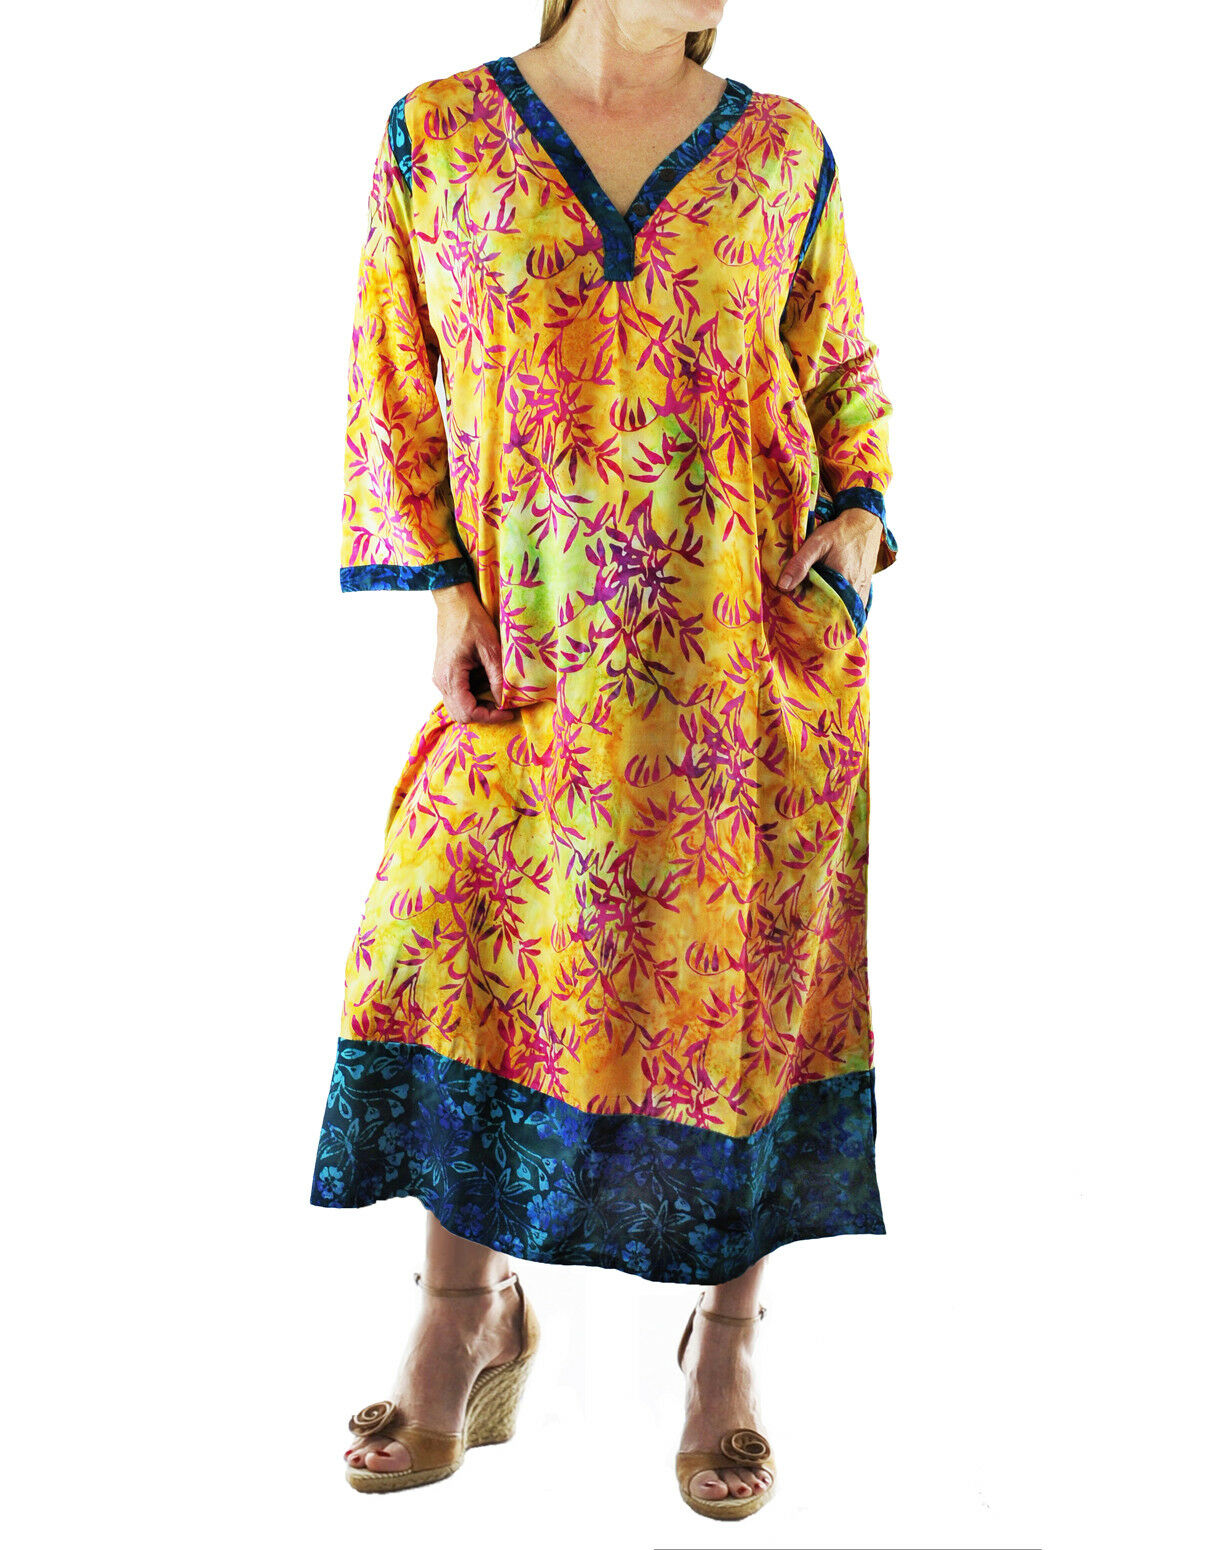 WeBeBop golden Sunrise COMBO Ubud Dress L XL 0X 1X 2X 3X 4X 5X 6X